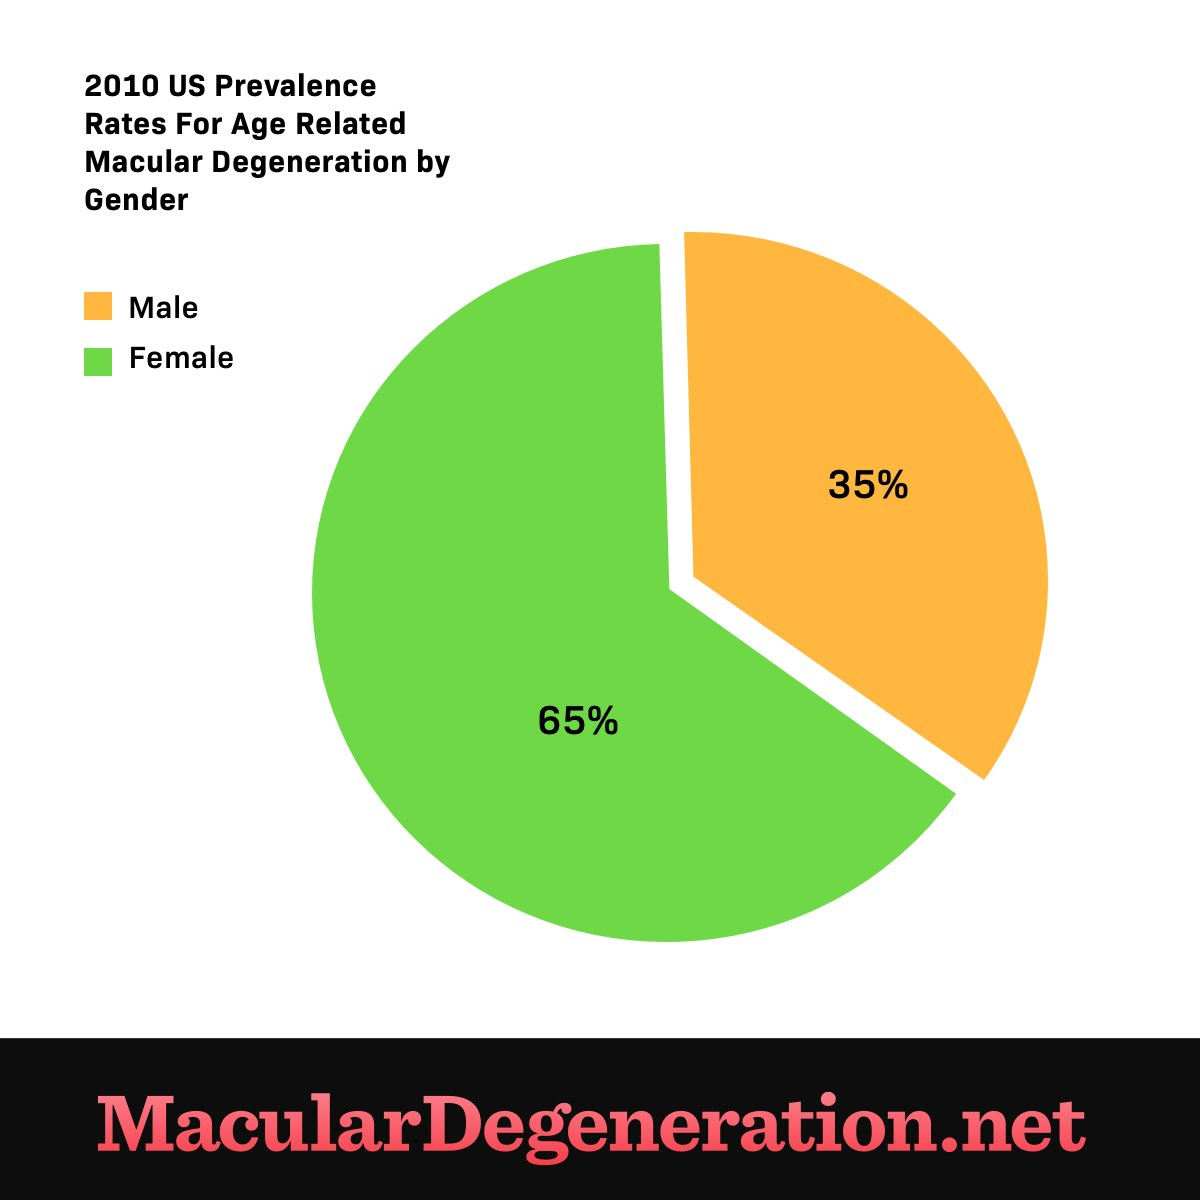 65 percent of those diagnosed with age related macualar degeneration are female